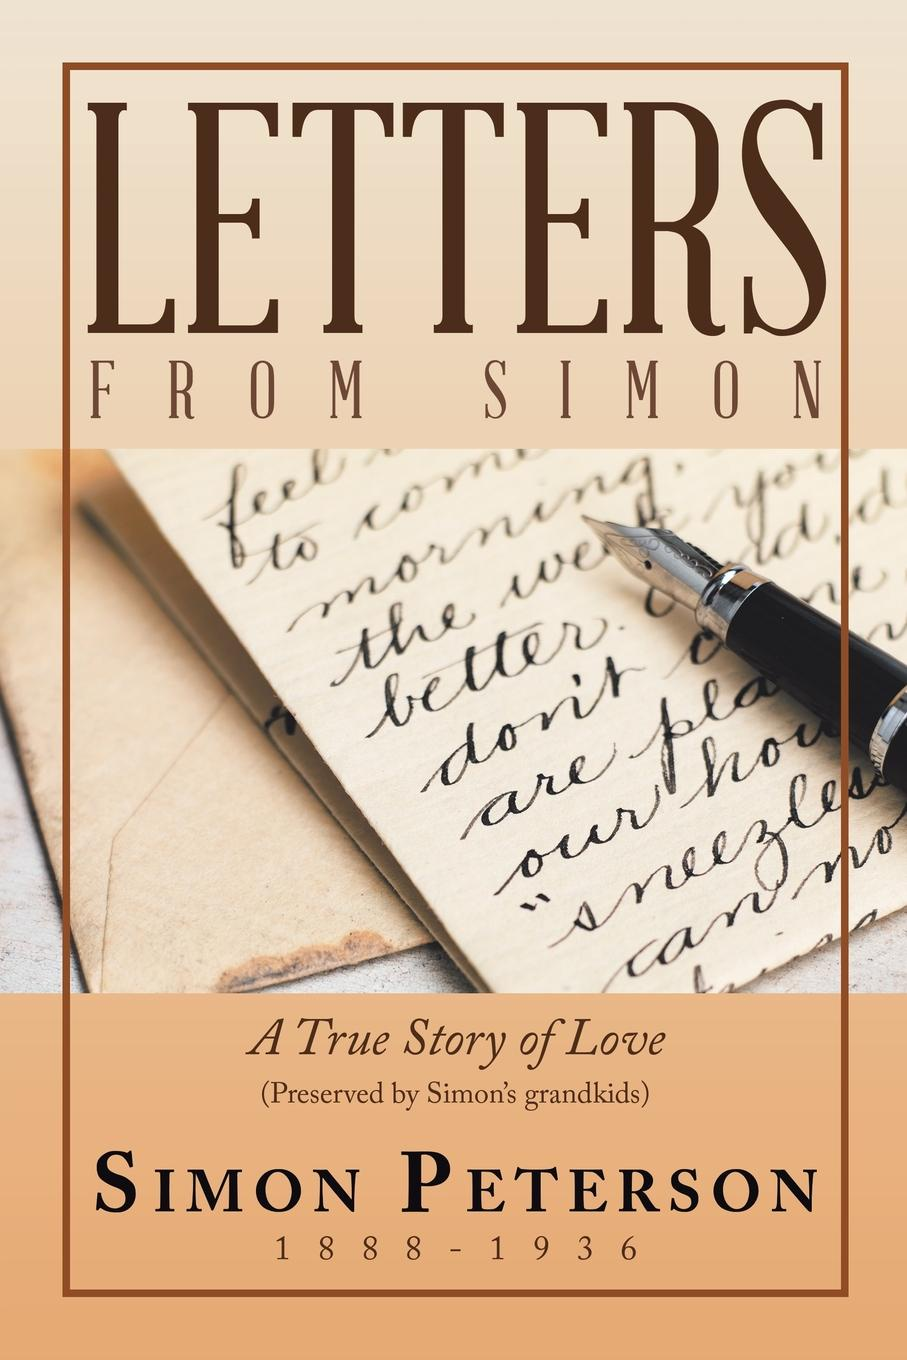 Simon Peterson Letters from Simon. A True Story of Love ghosh abhik letters to a young chemist